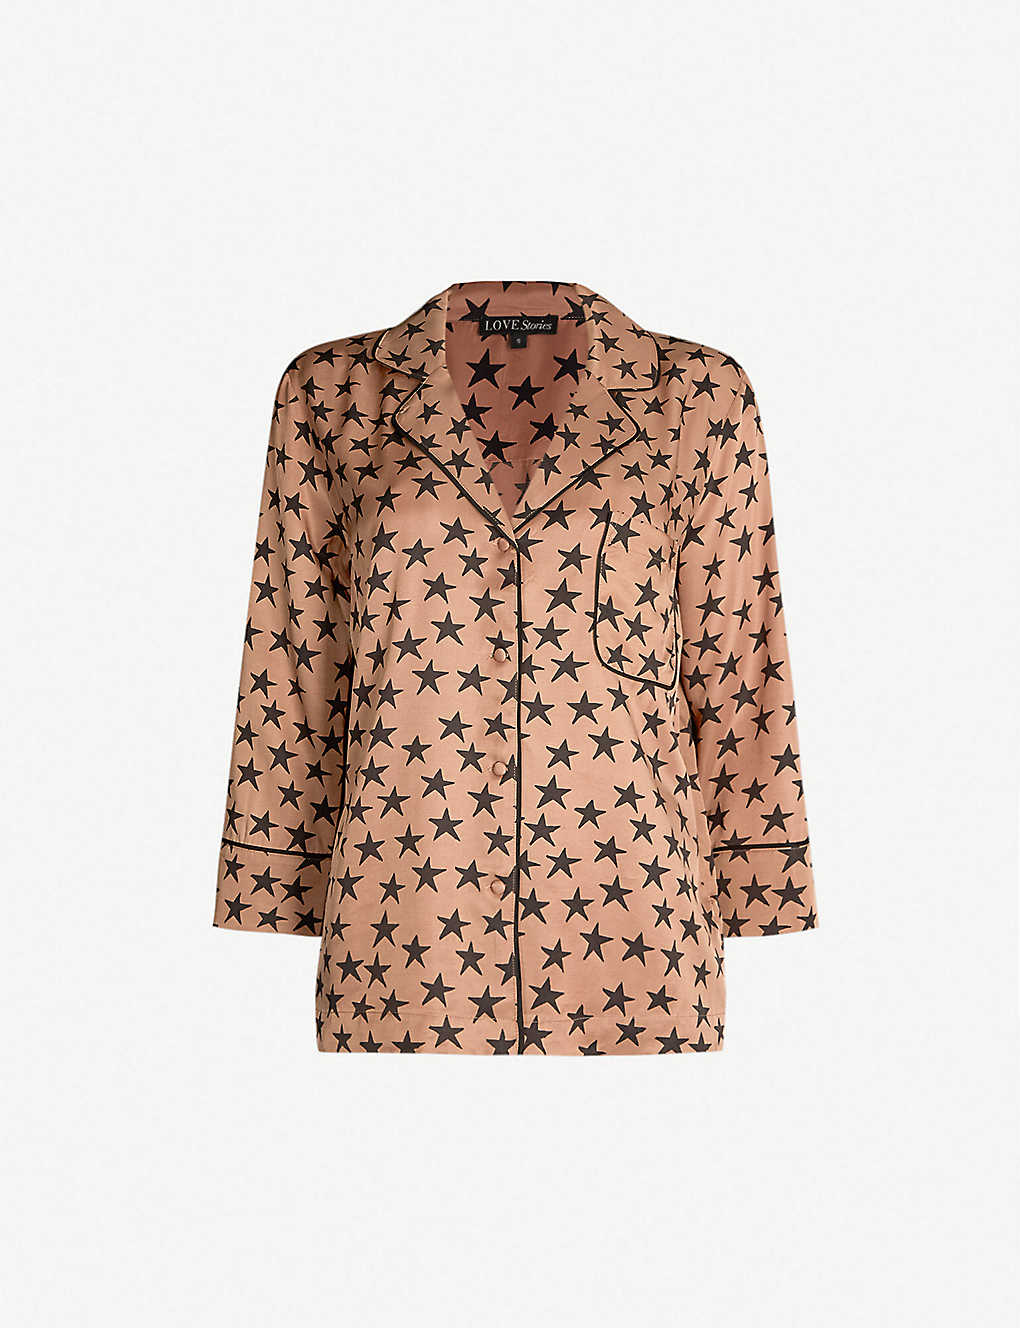 fc573630 LOVE STORIES - Jude star-print satin pyjama shirt | Selfridges.com